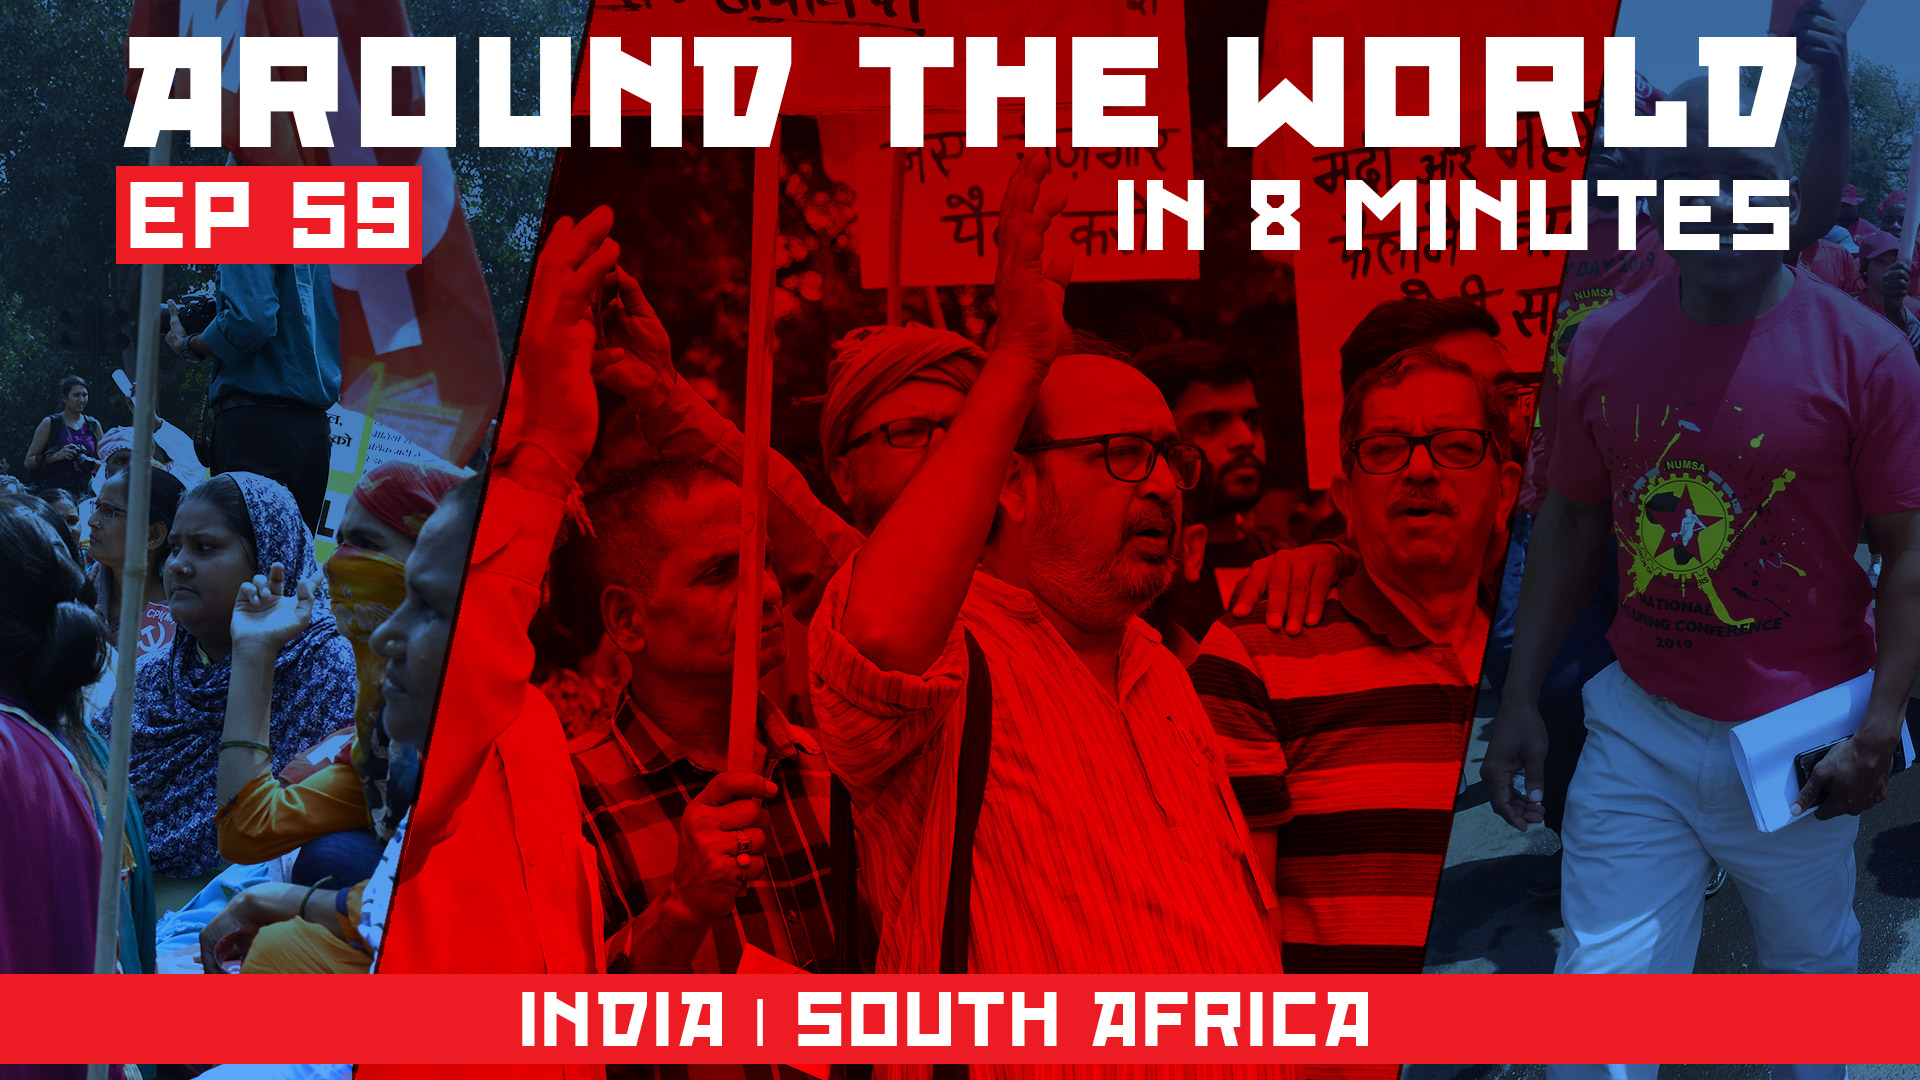 India South Africa ATW 59